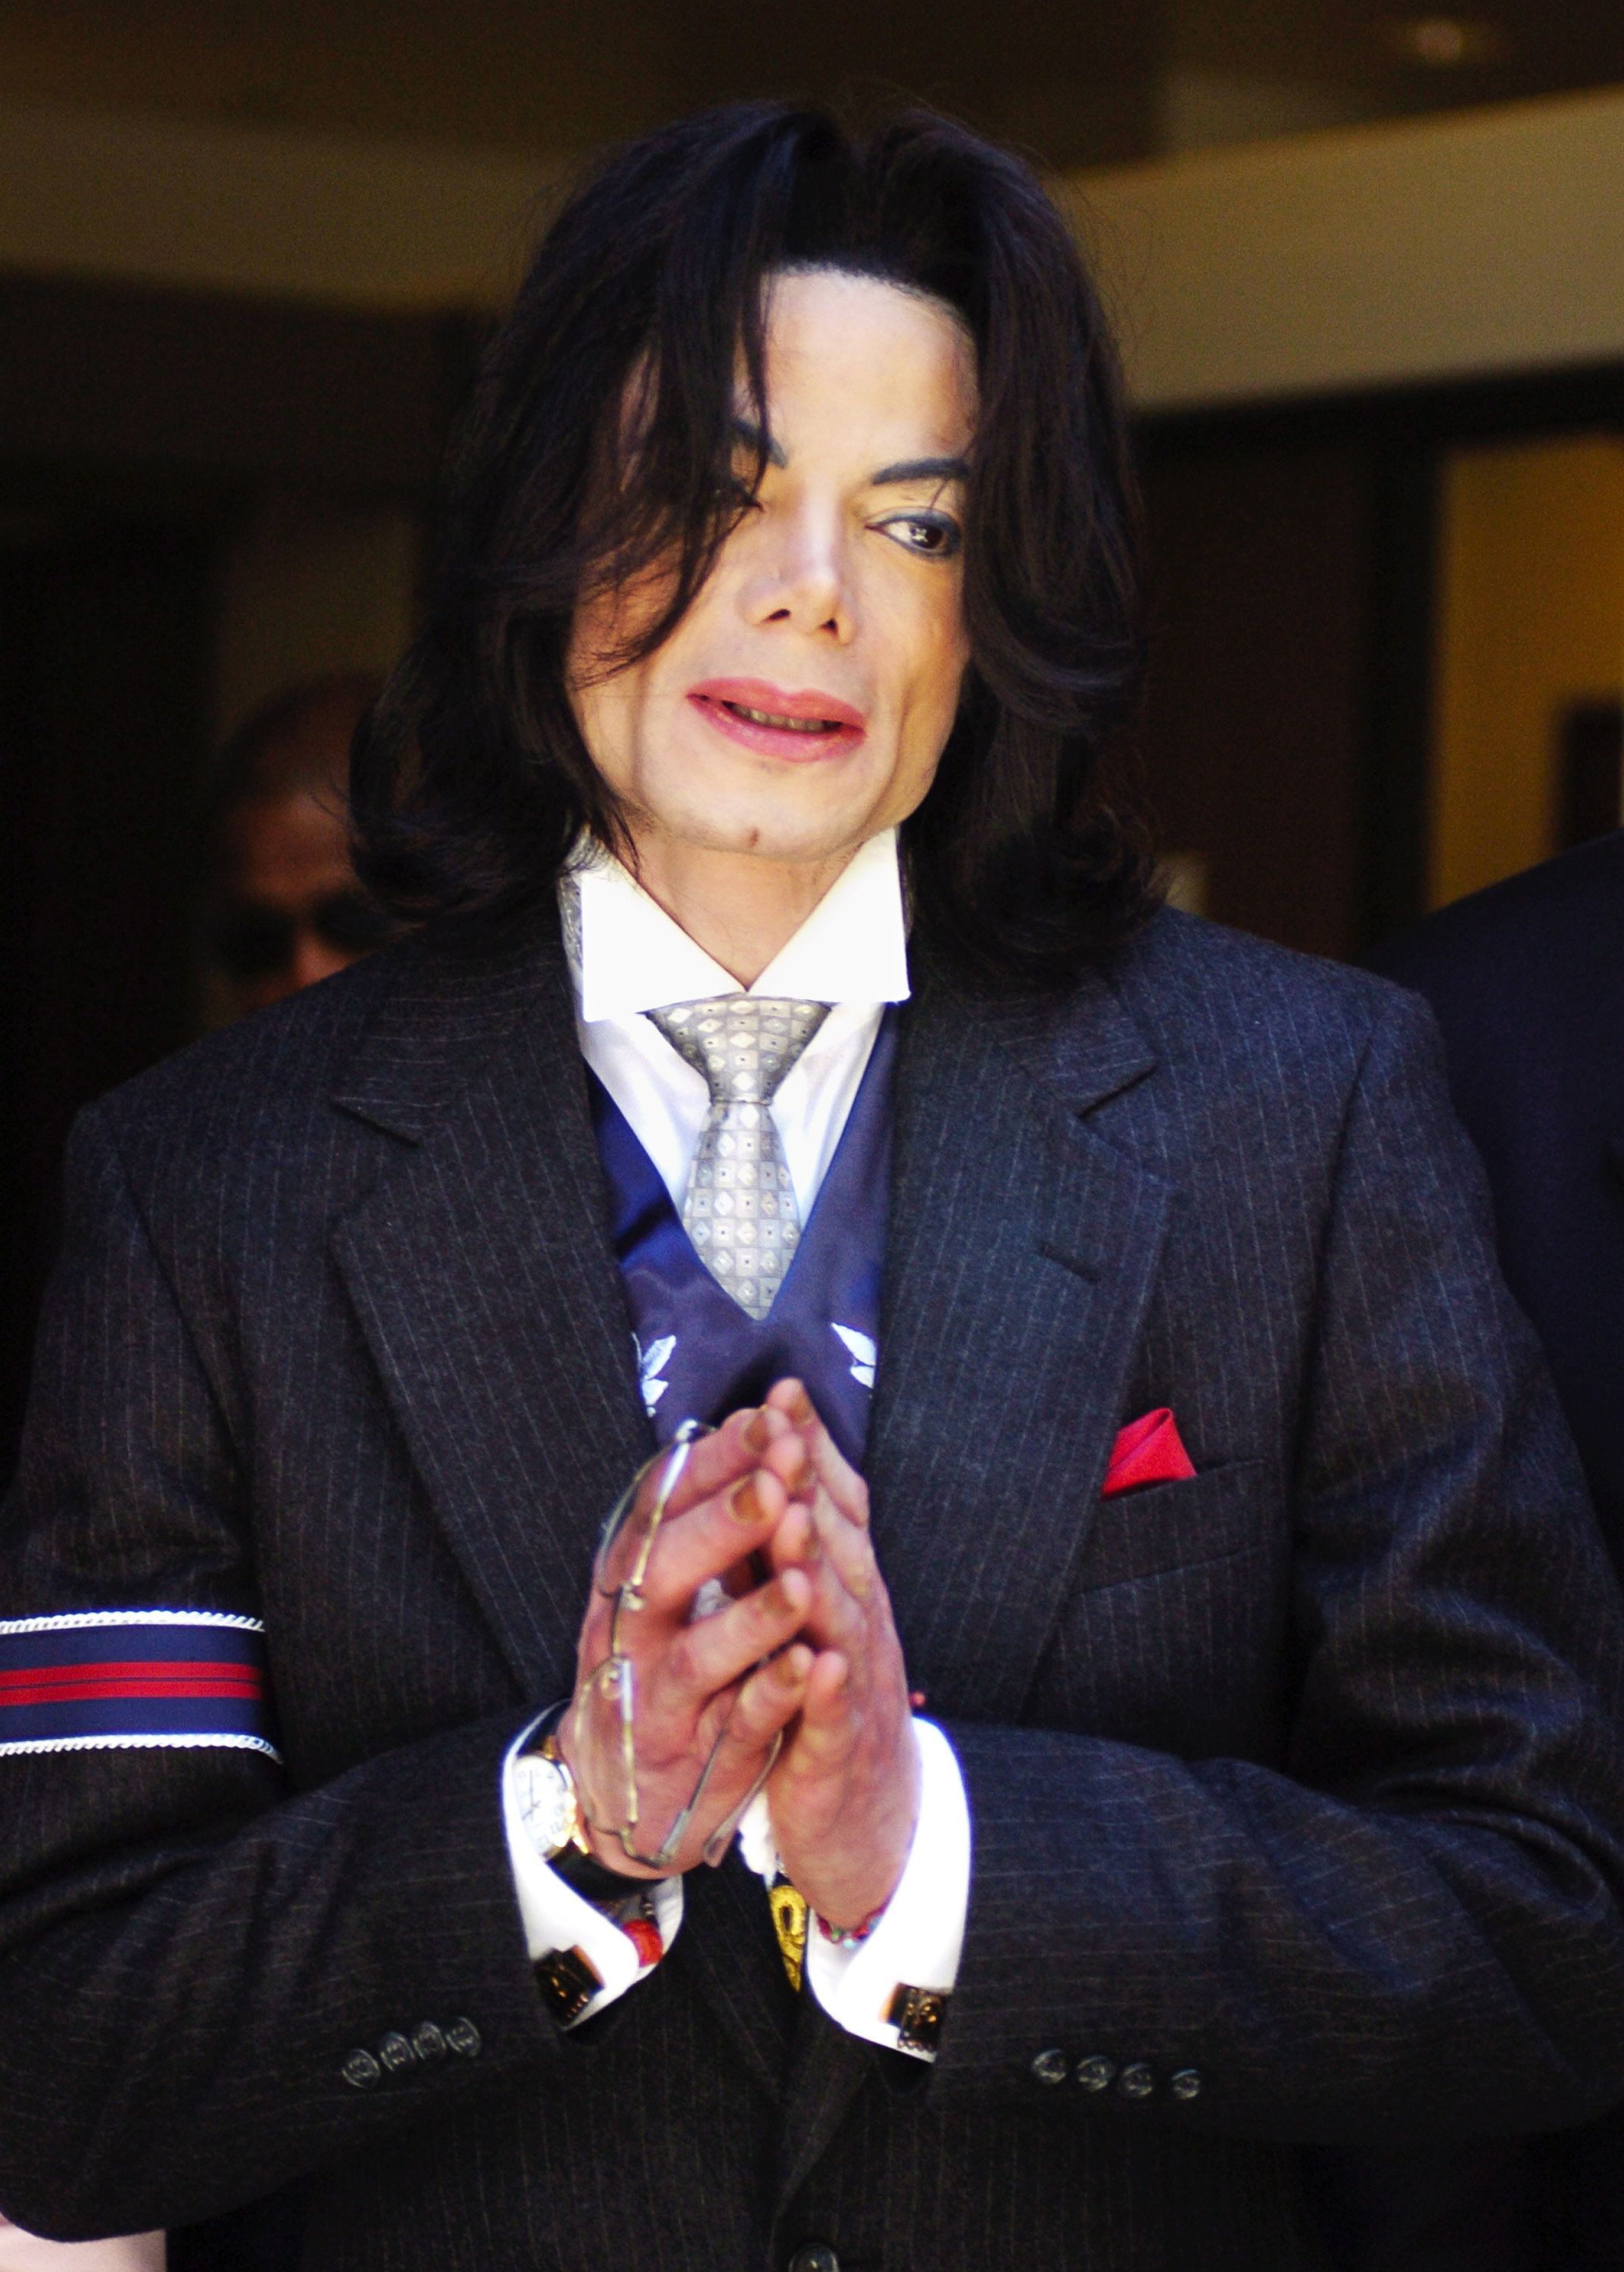 Everything You Need To Know About The Michael Jackson Police